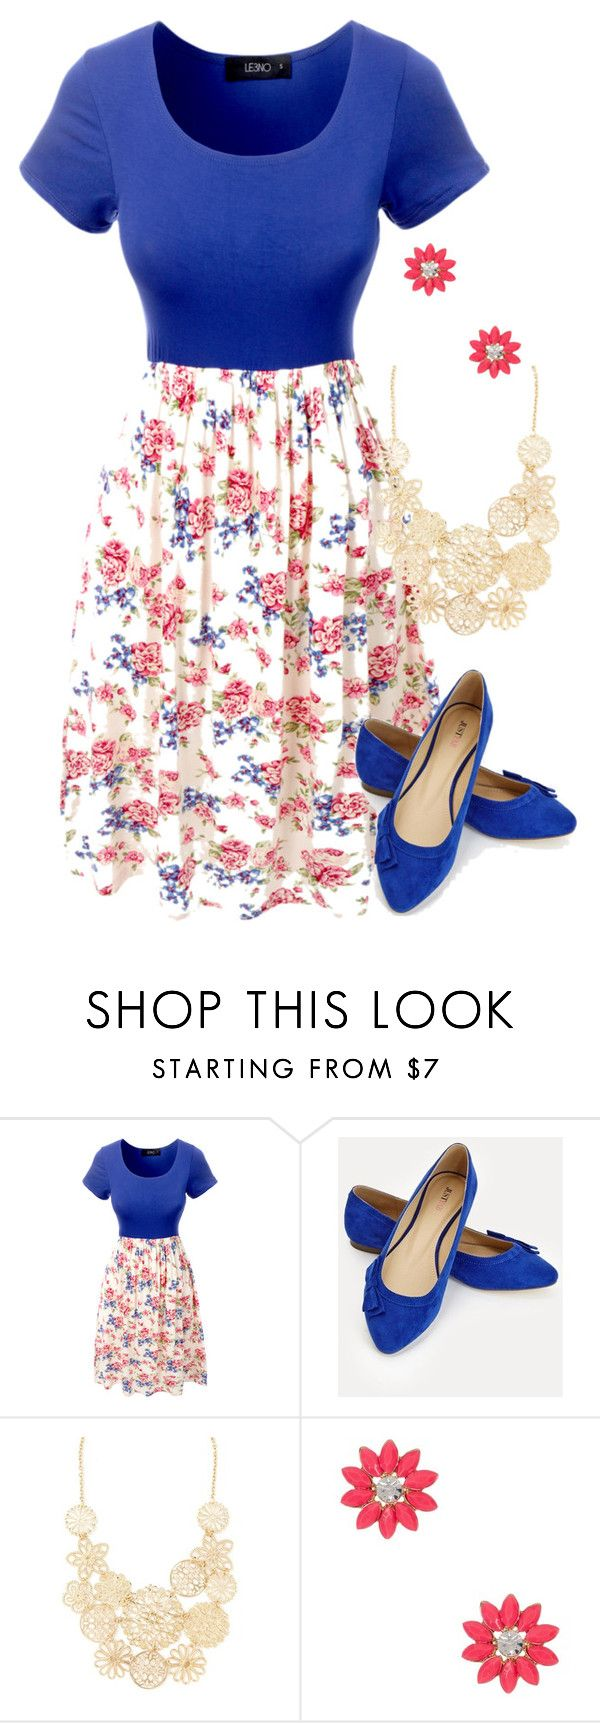 Teacher Outfits on a Teacher's Budget 182 by allij28 on Polyvore featuring LE3NO, JustFab, Forever 21 and Natasha Accessories